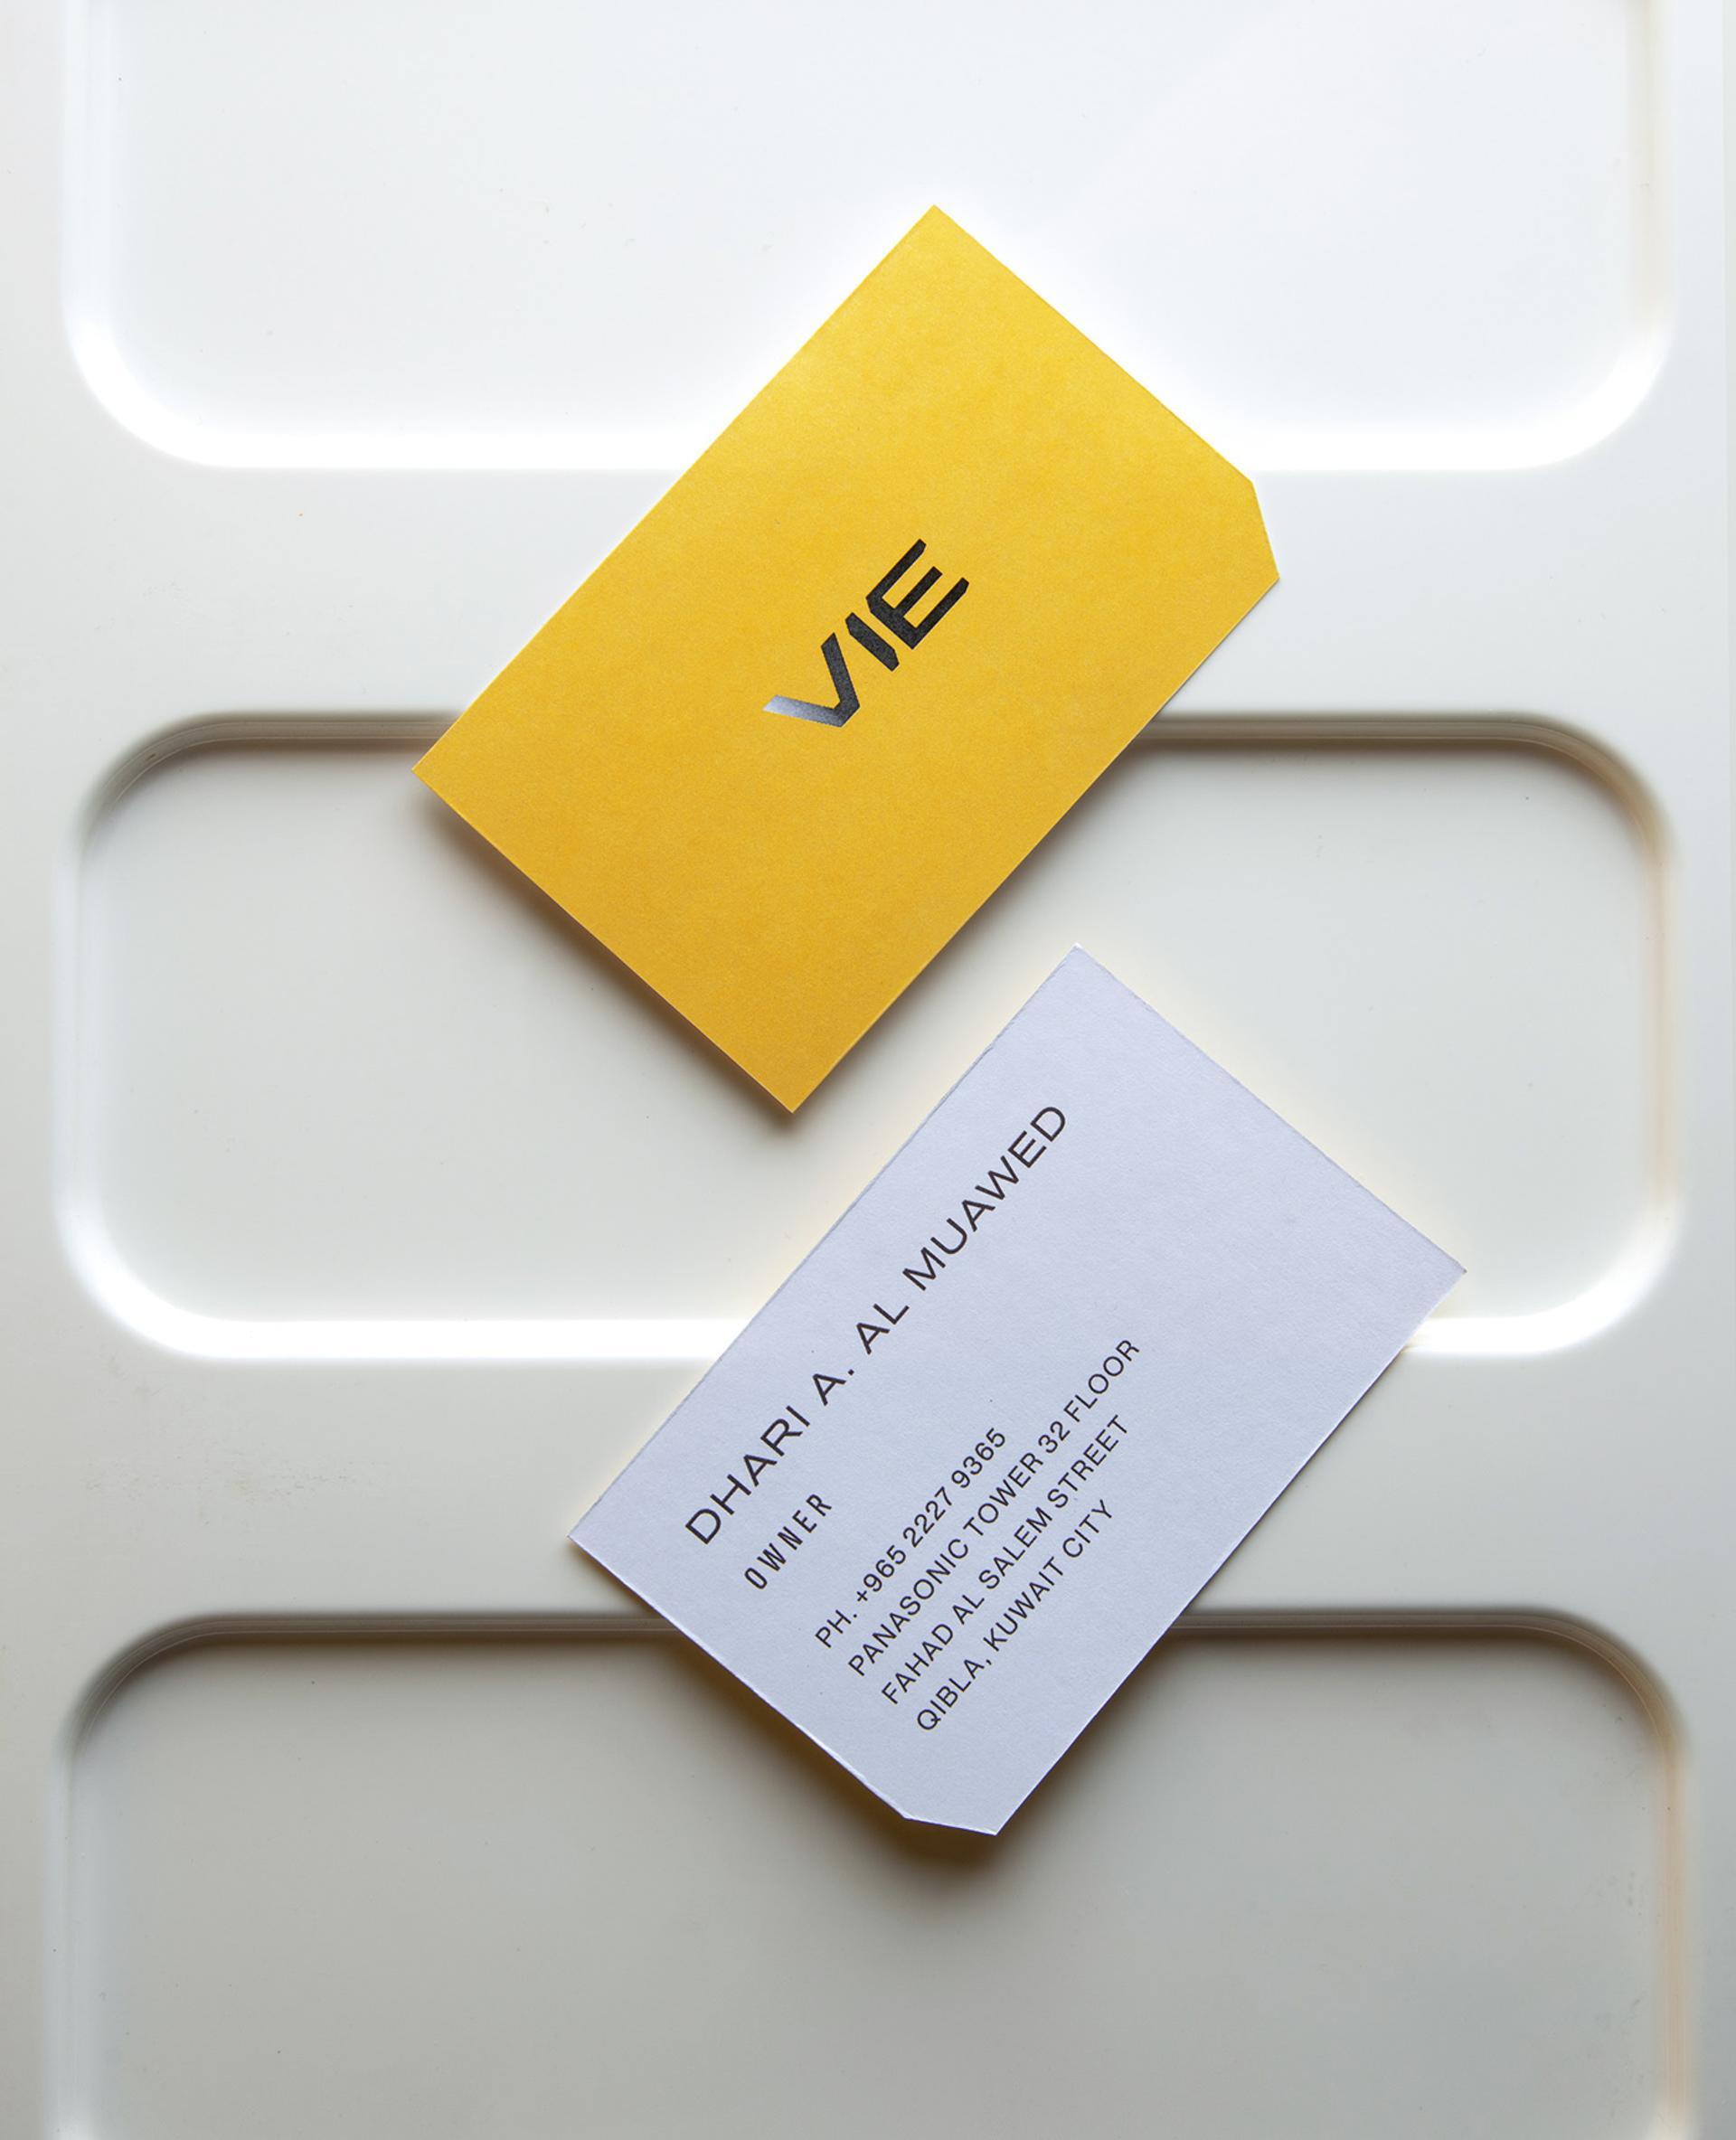 VIE Visiting Print Card